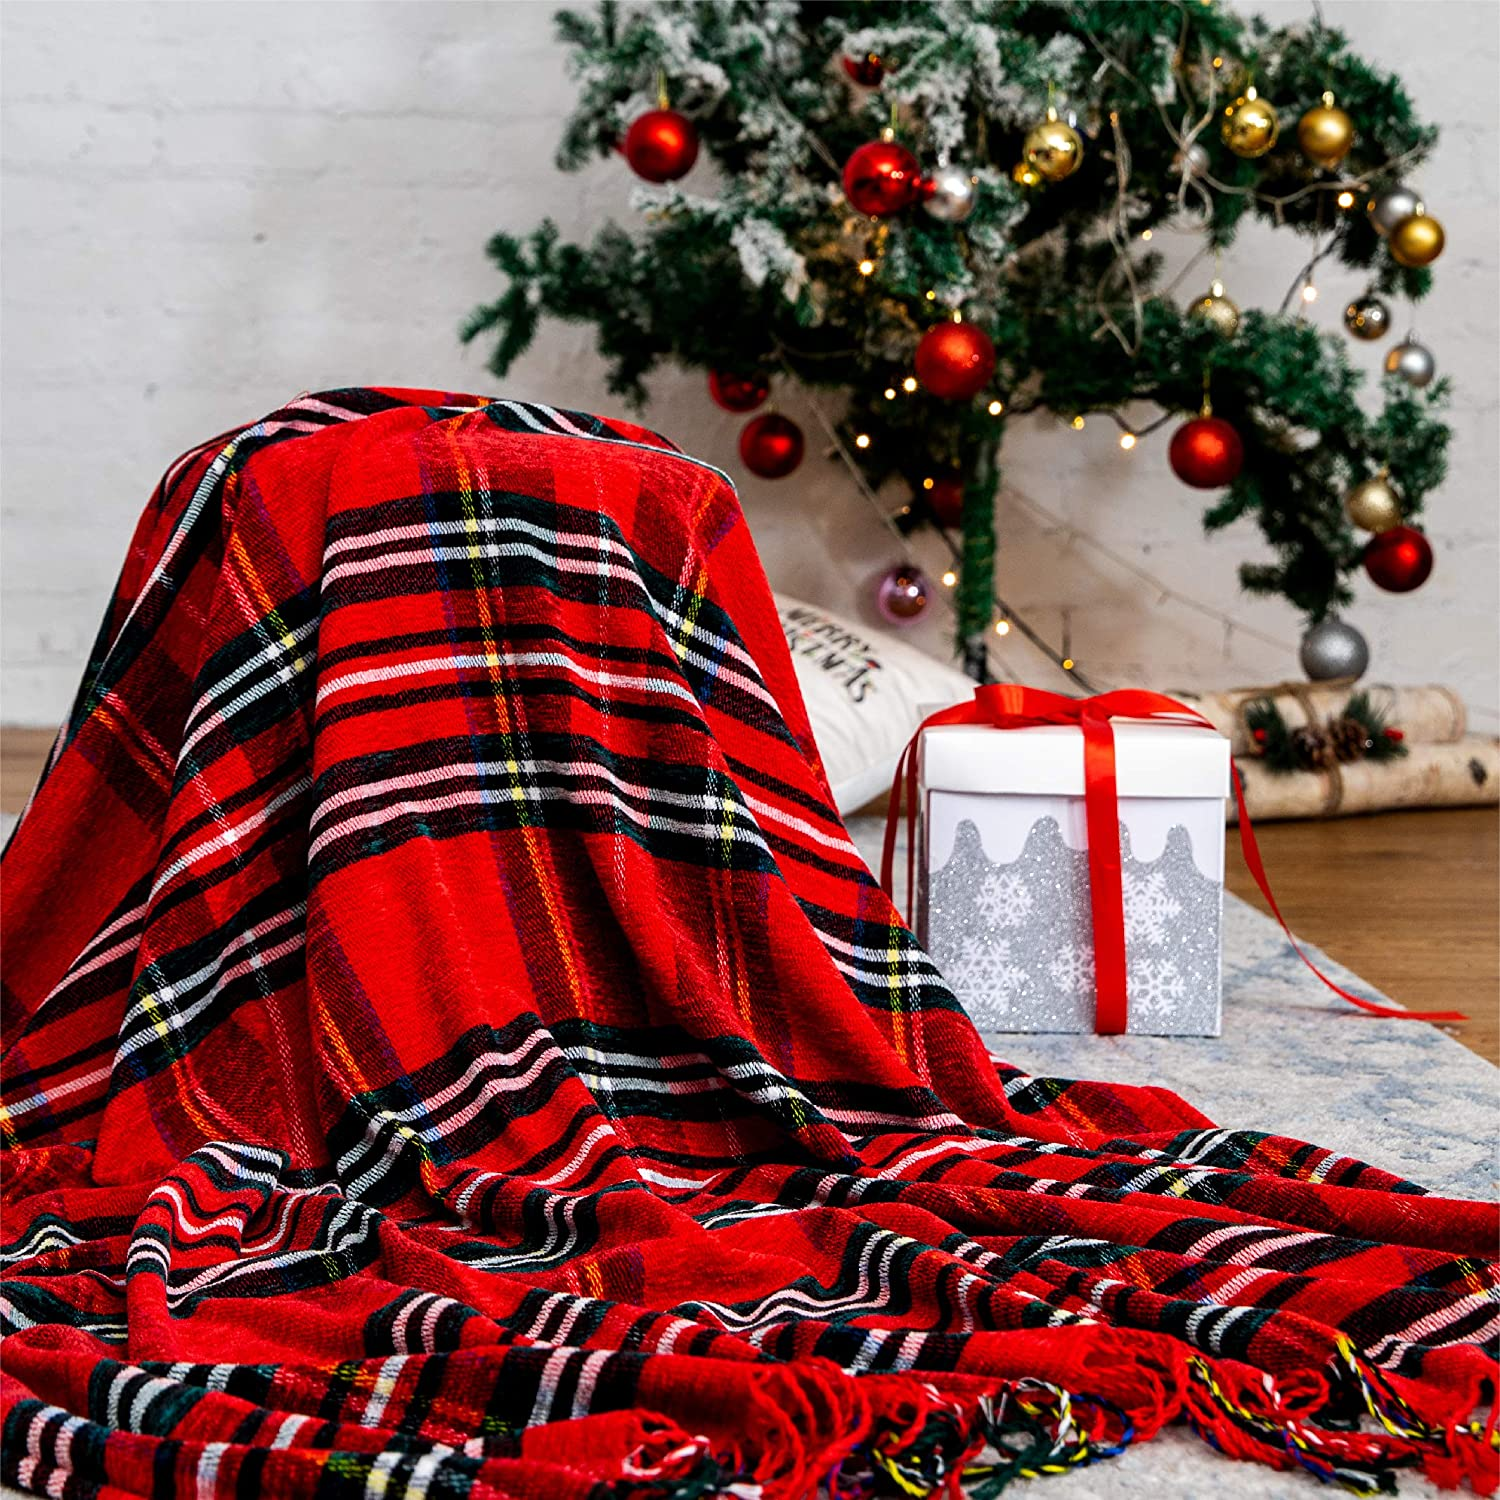 "Bedsure Christmas Plaid Blanket Throw Size, Soft Chenille Decorative Blanket with Tassel for Couch, Sofa, Bed and Home Decor (Red, 50""x60"")"